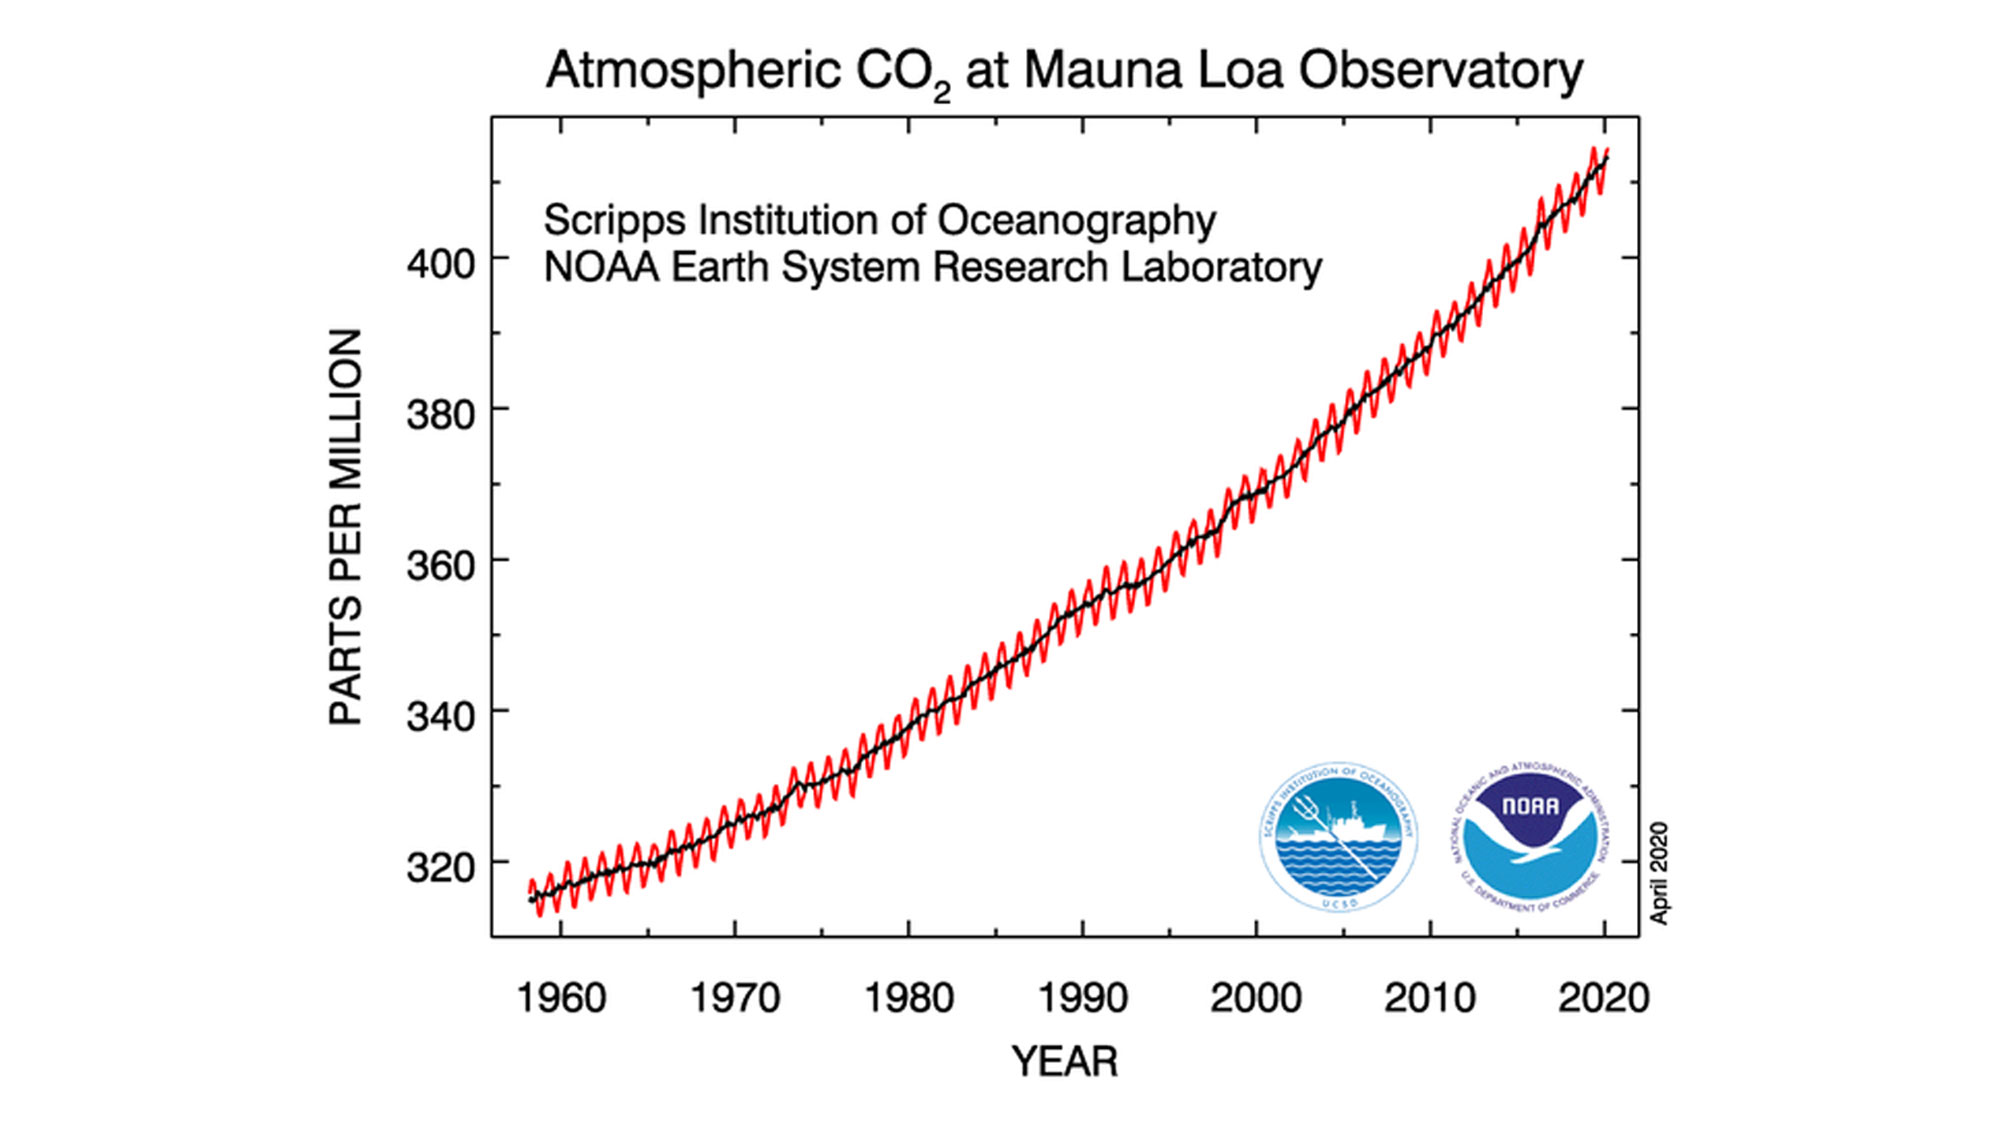 Diagram showing the steady rise in atmospheric CO2 concentration at the Mauna Loa Observatory over nearly 60 years.